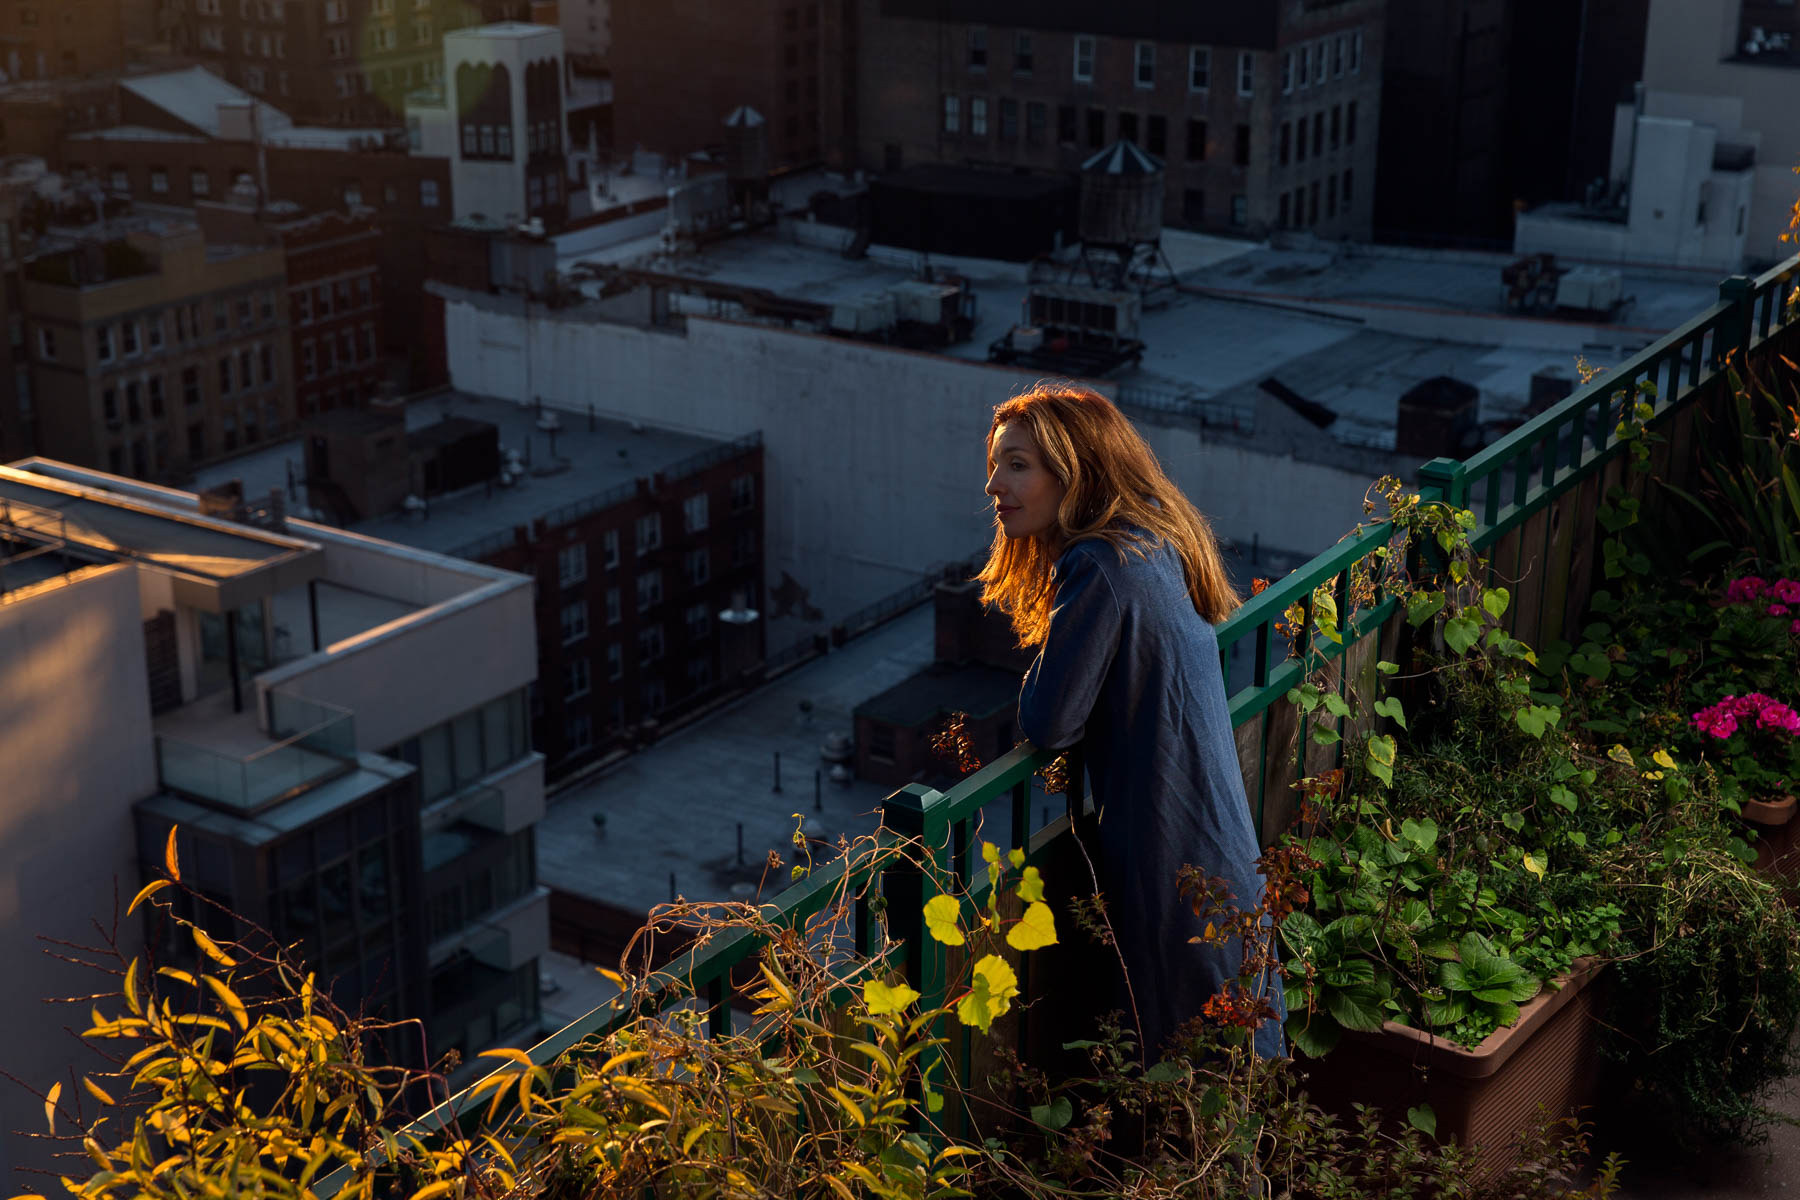 Environmental portrait on a rooftop New York City by Martin Adolfsson